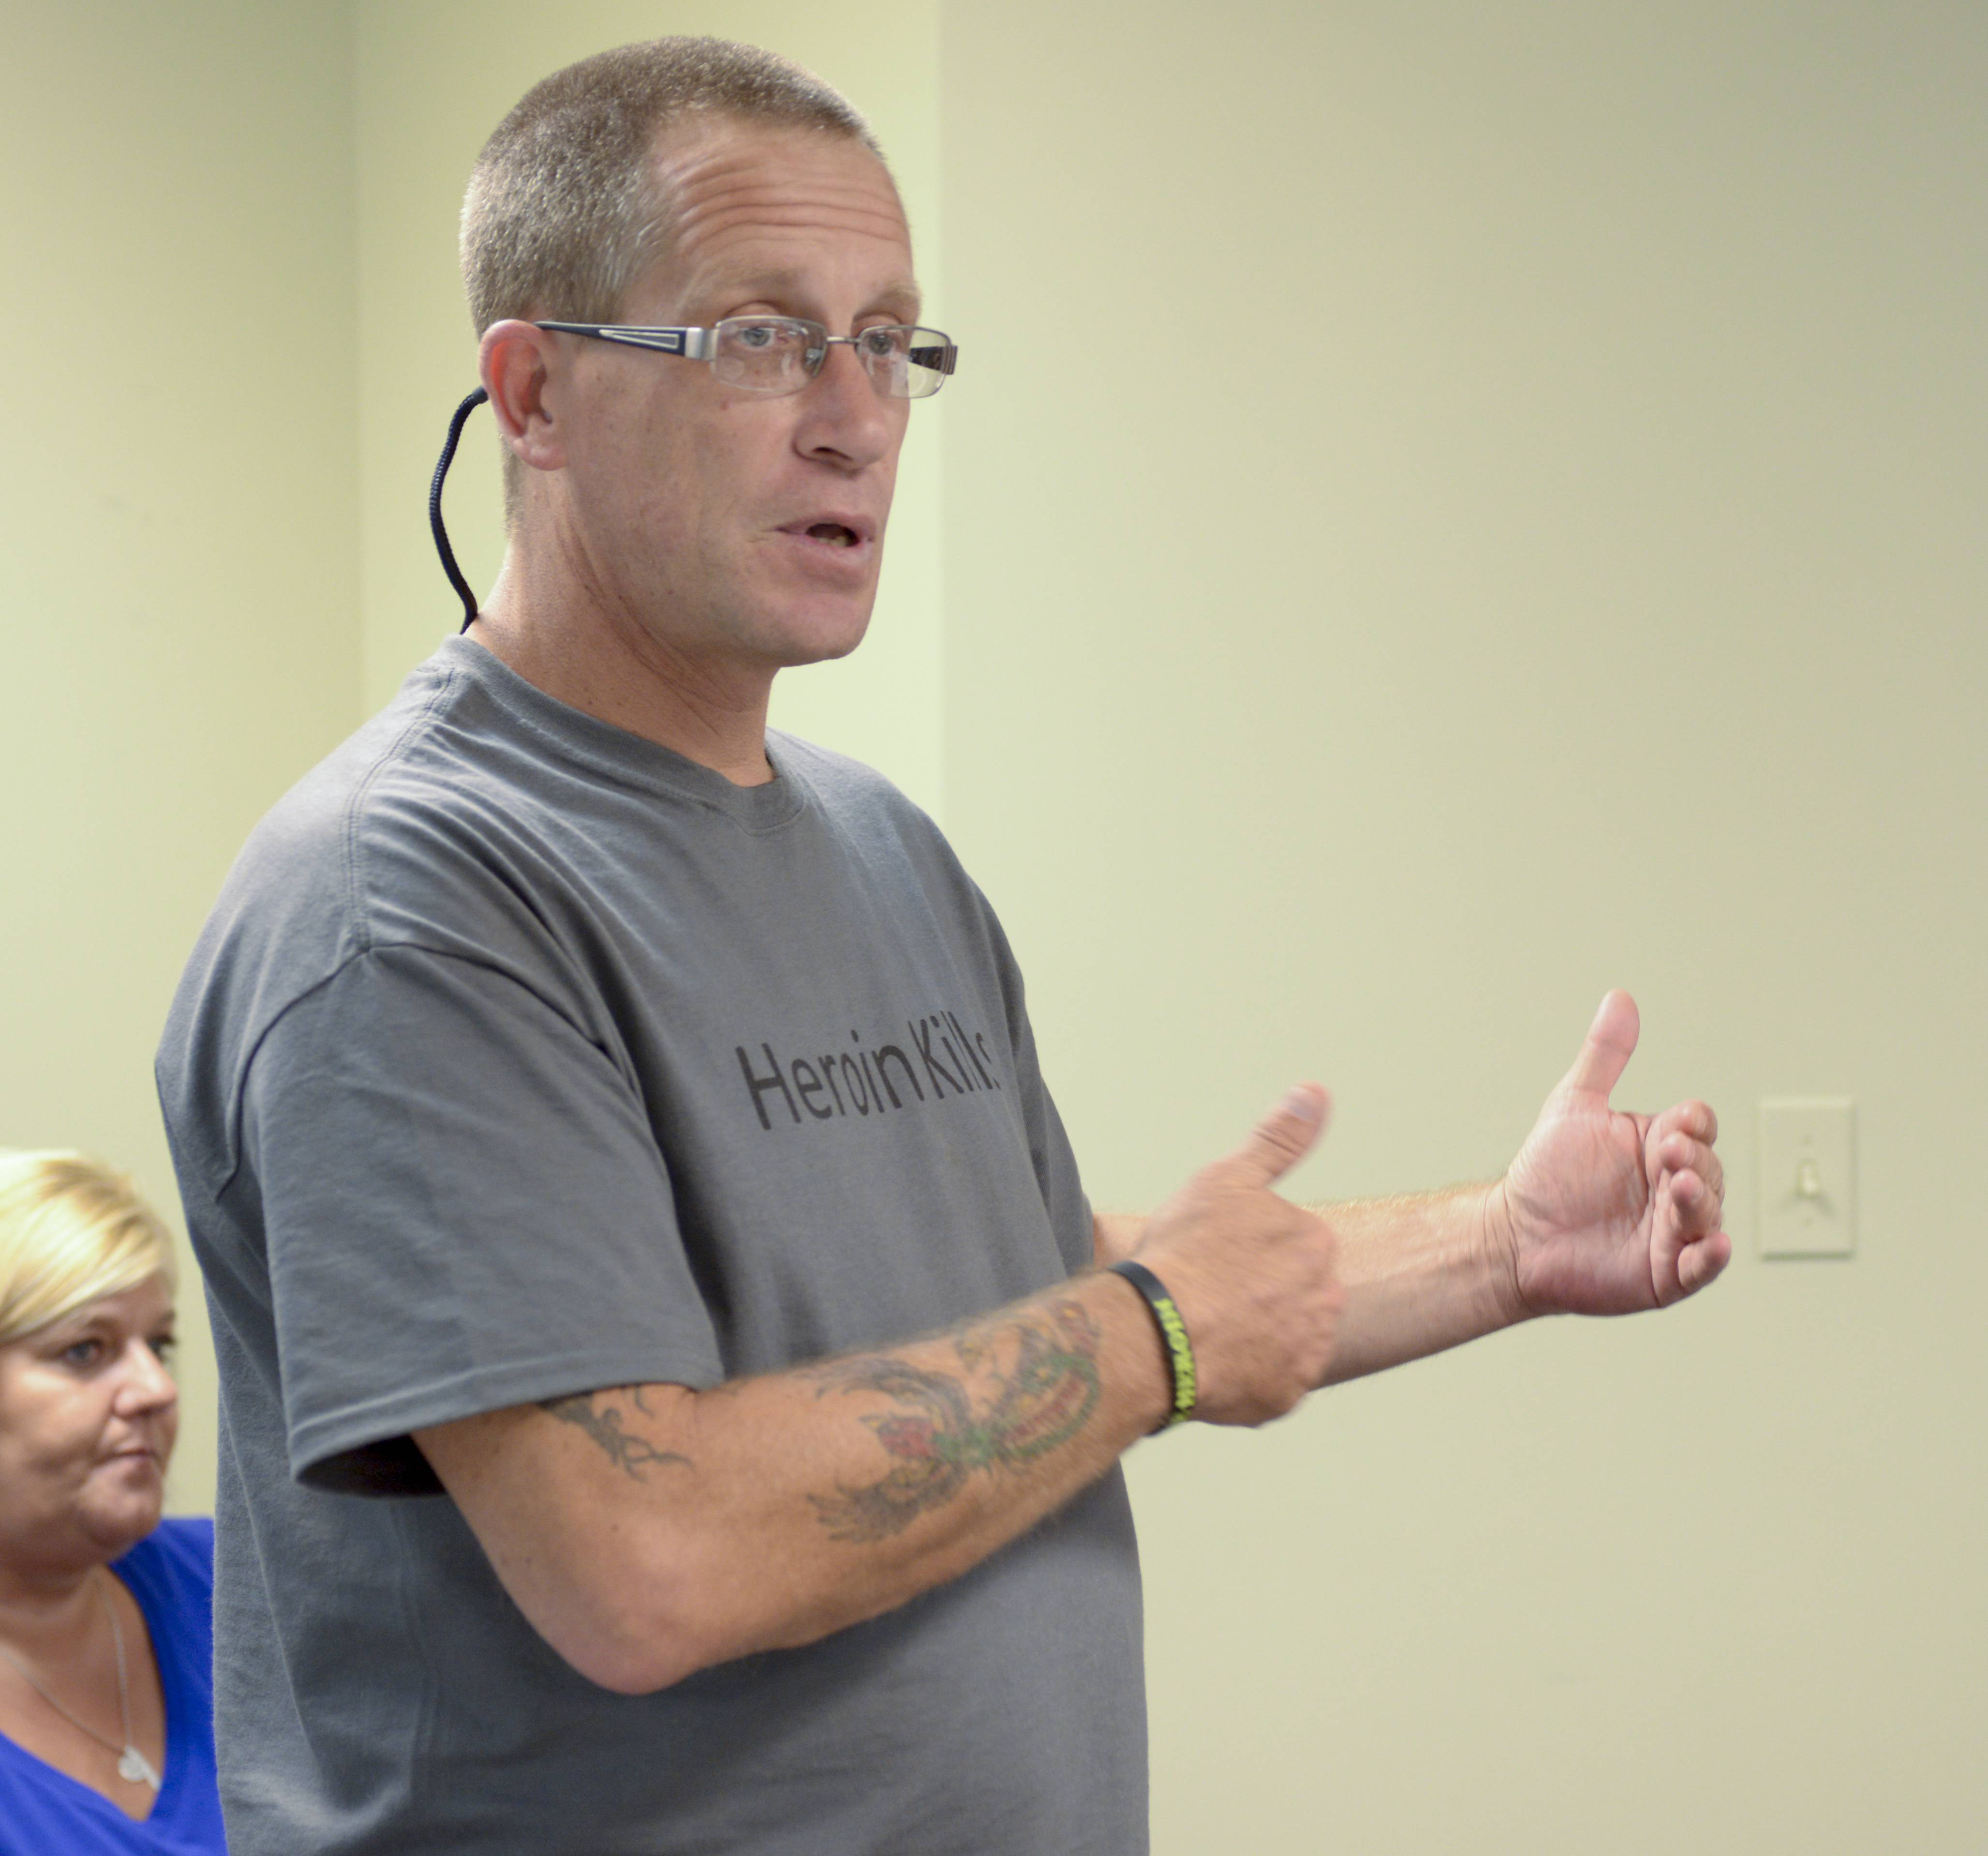 Tim Ryan of Naperville speaks Thursday night about the loss of his son, Nick, to an apparent heroin overdose and the importance of having the overdose reversal drug Naloxone available. Ryan, who himself is a recovering heroin addict, hosted the training session less than a week after his son's death Aug. 1.